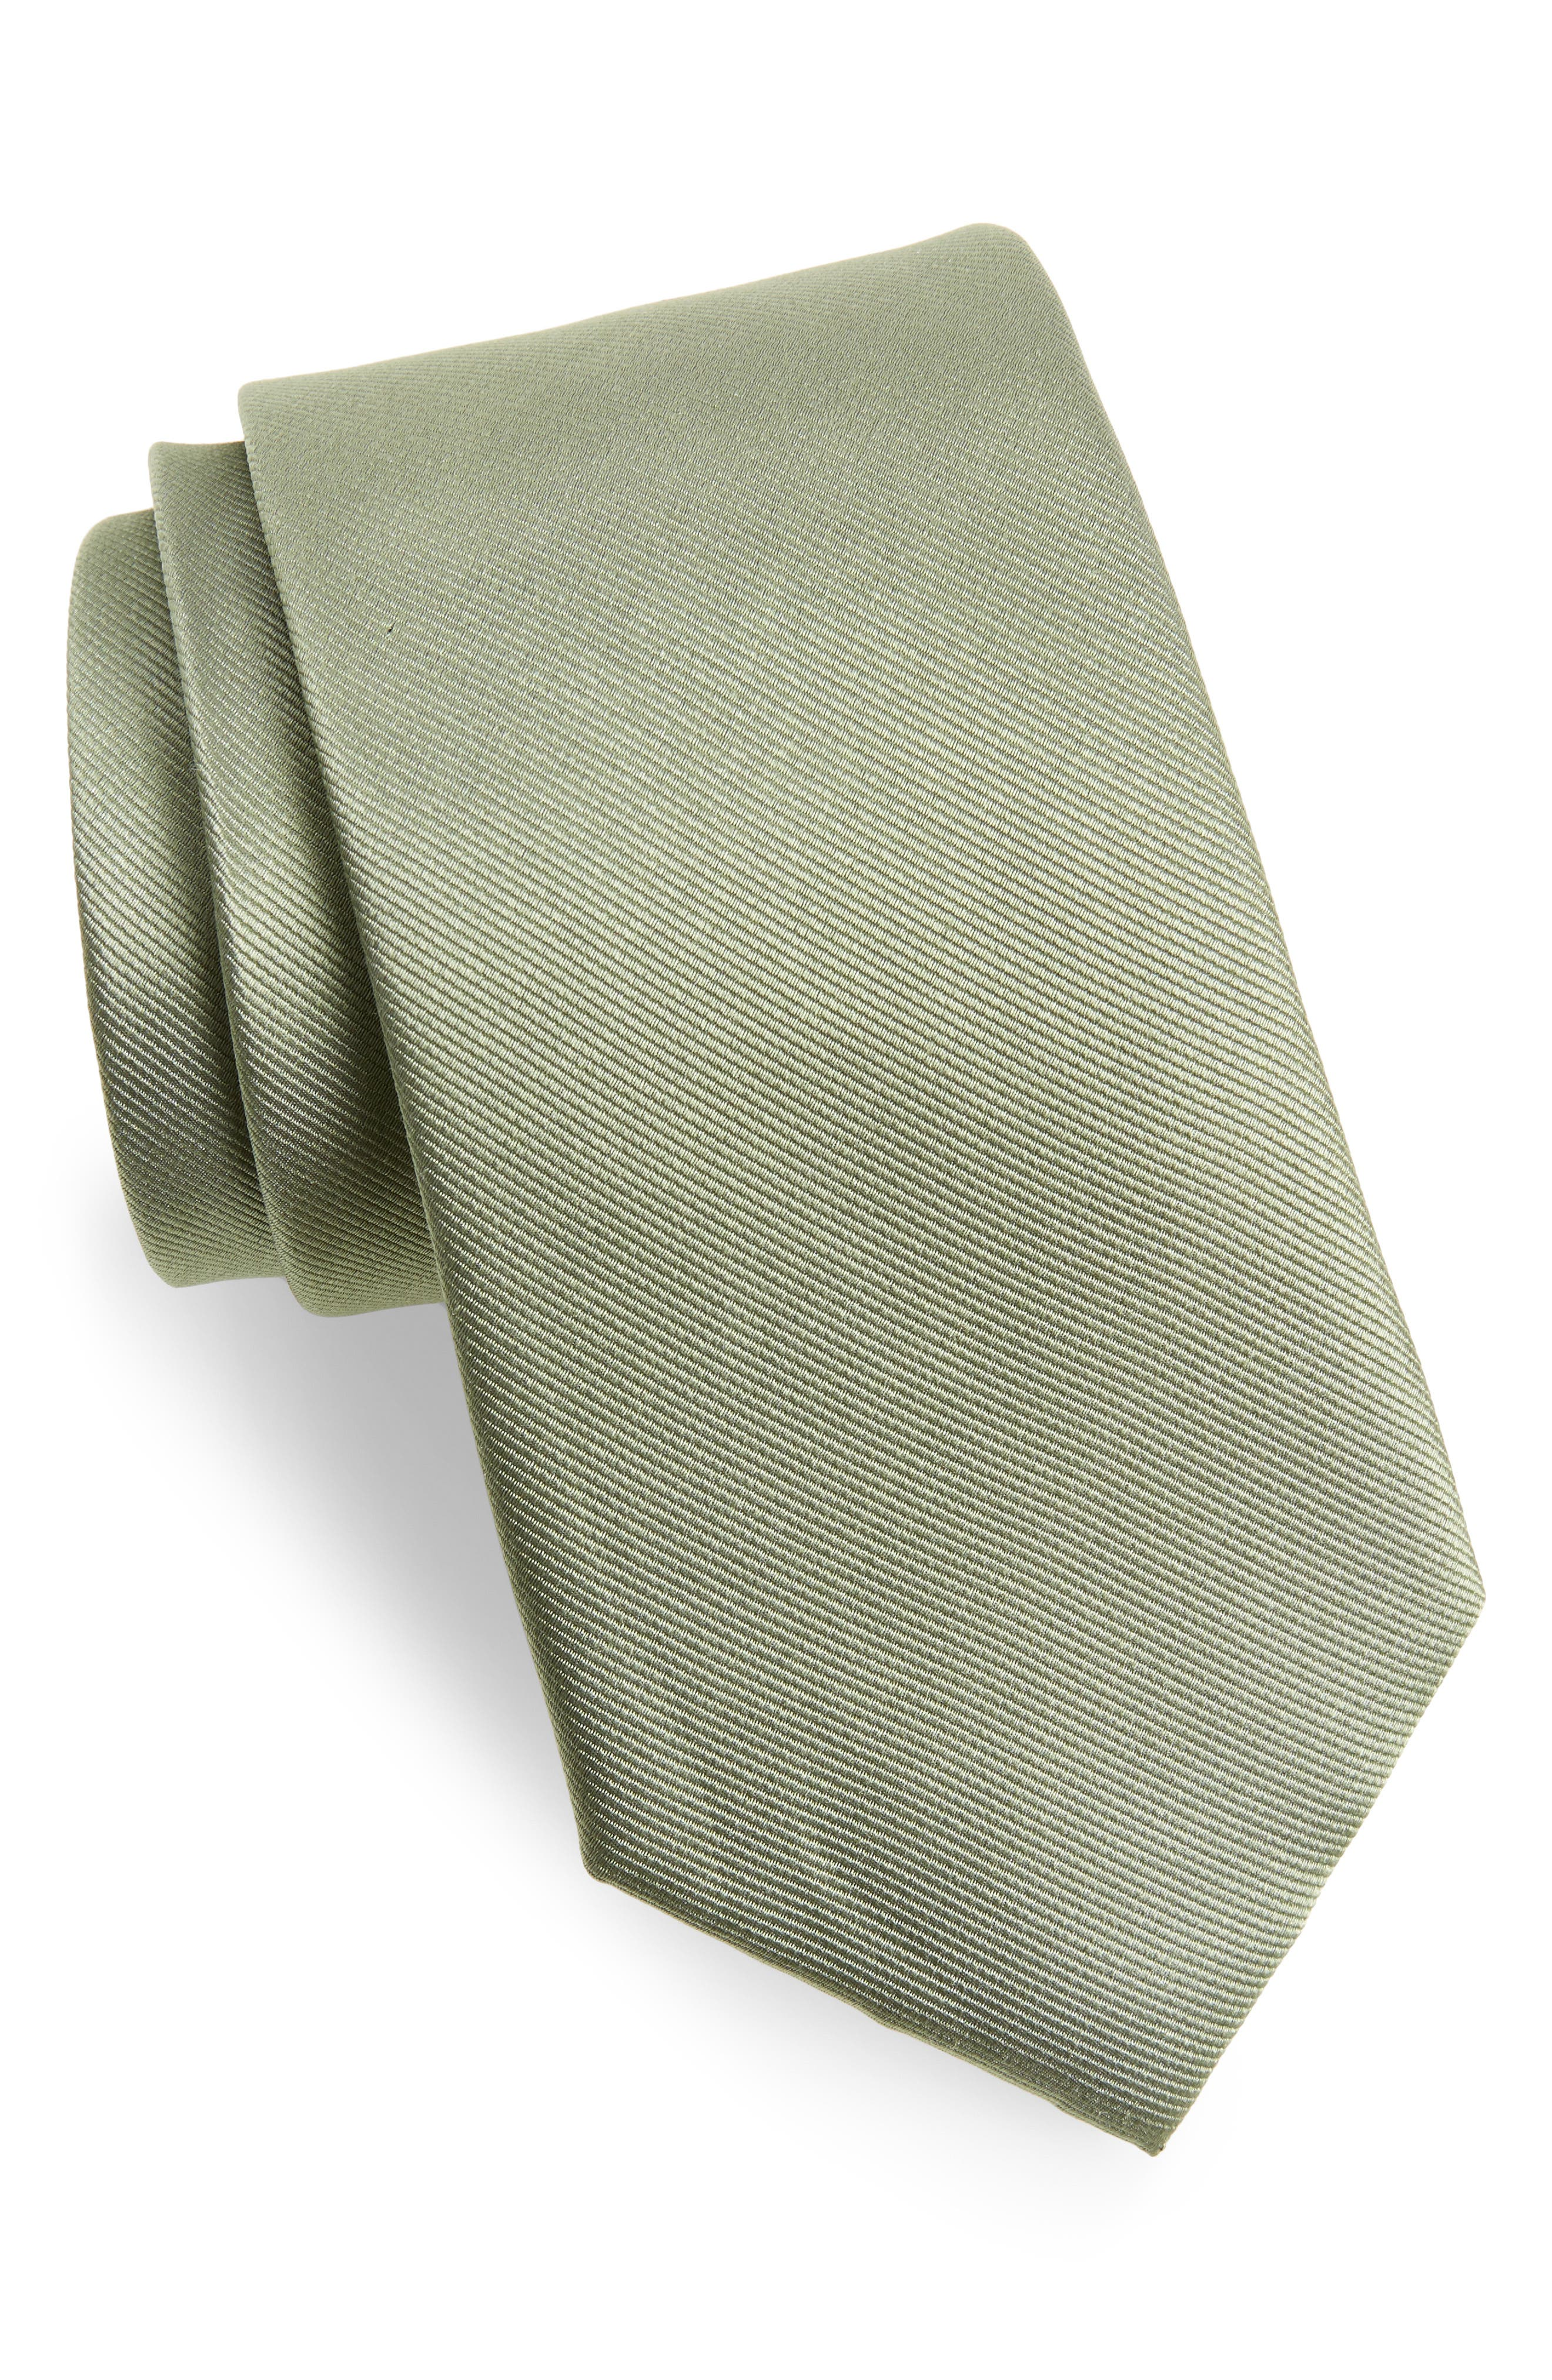 Alternate Image 1 Selected - The Tie Bar Solid Silk Tie (X-Long)